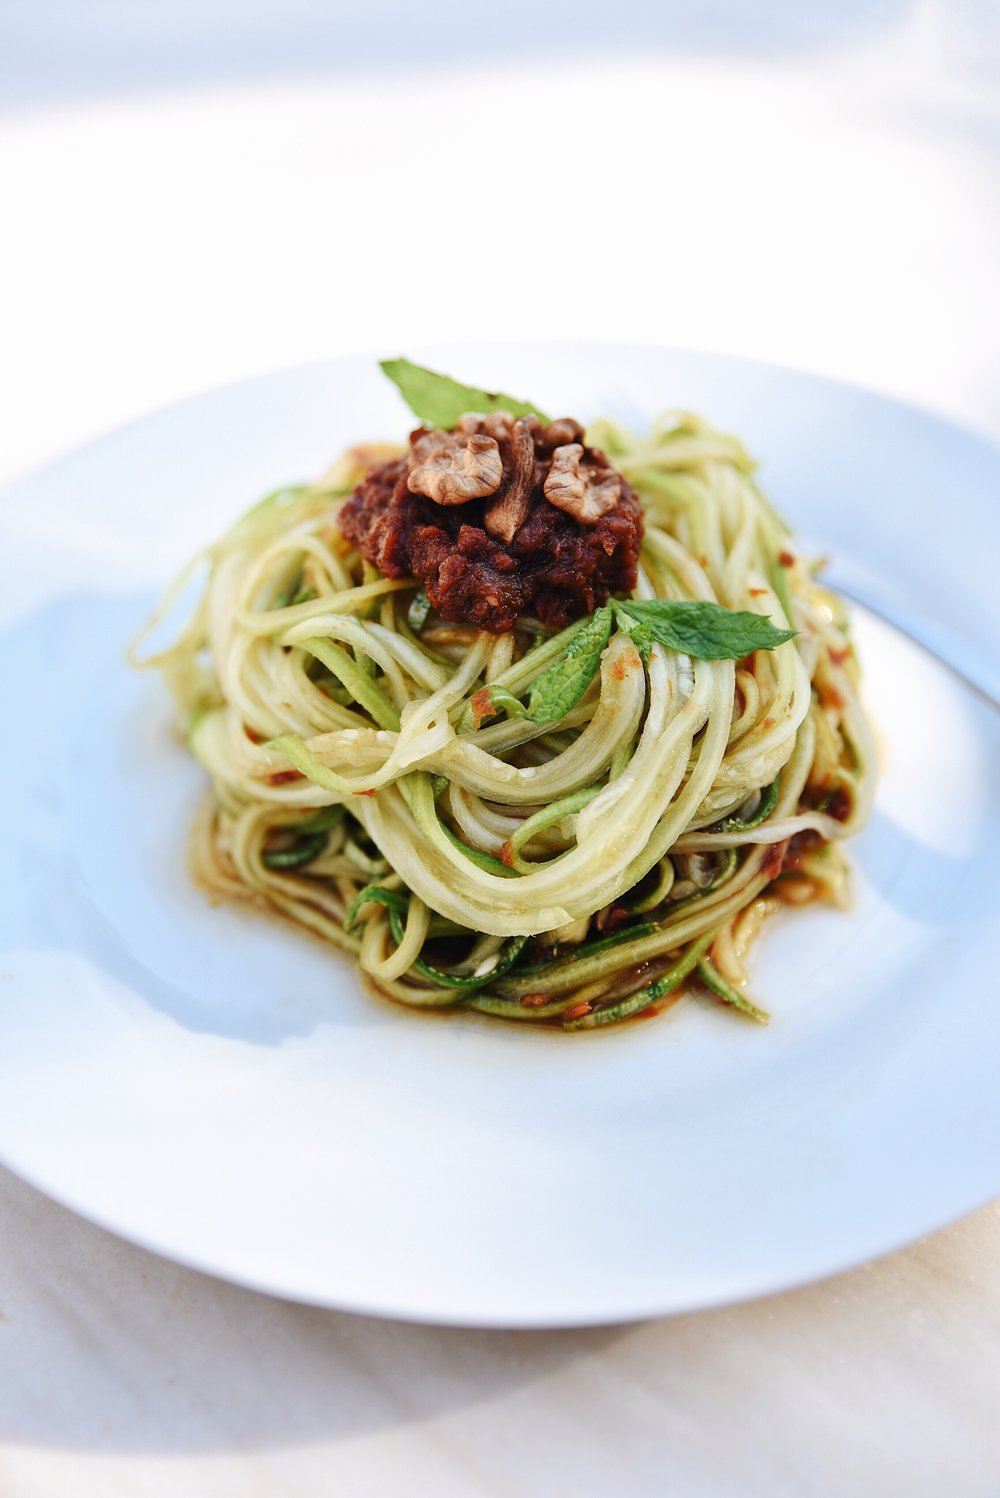 zoodles_Muhsienphotography.JPG